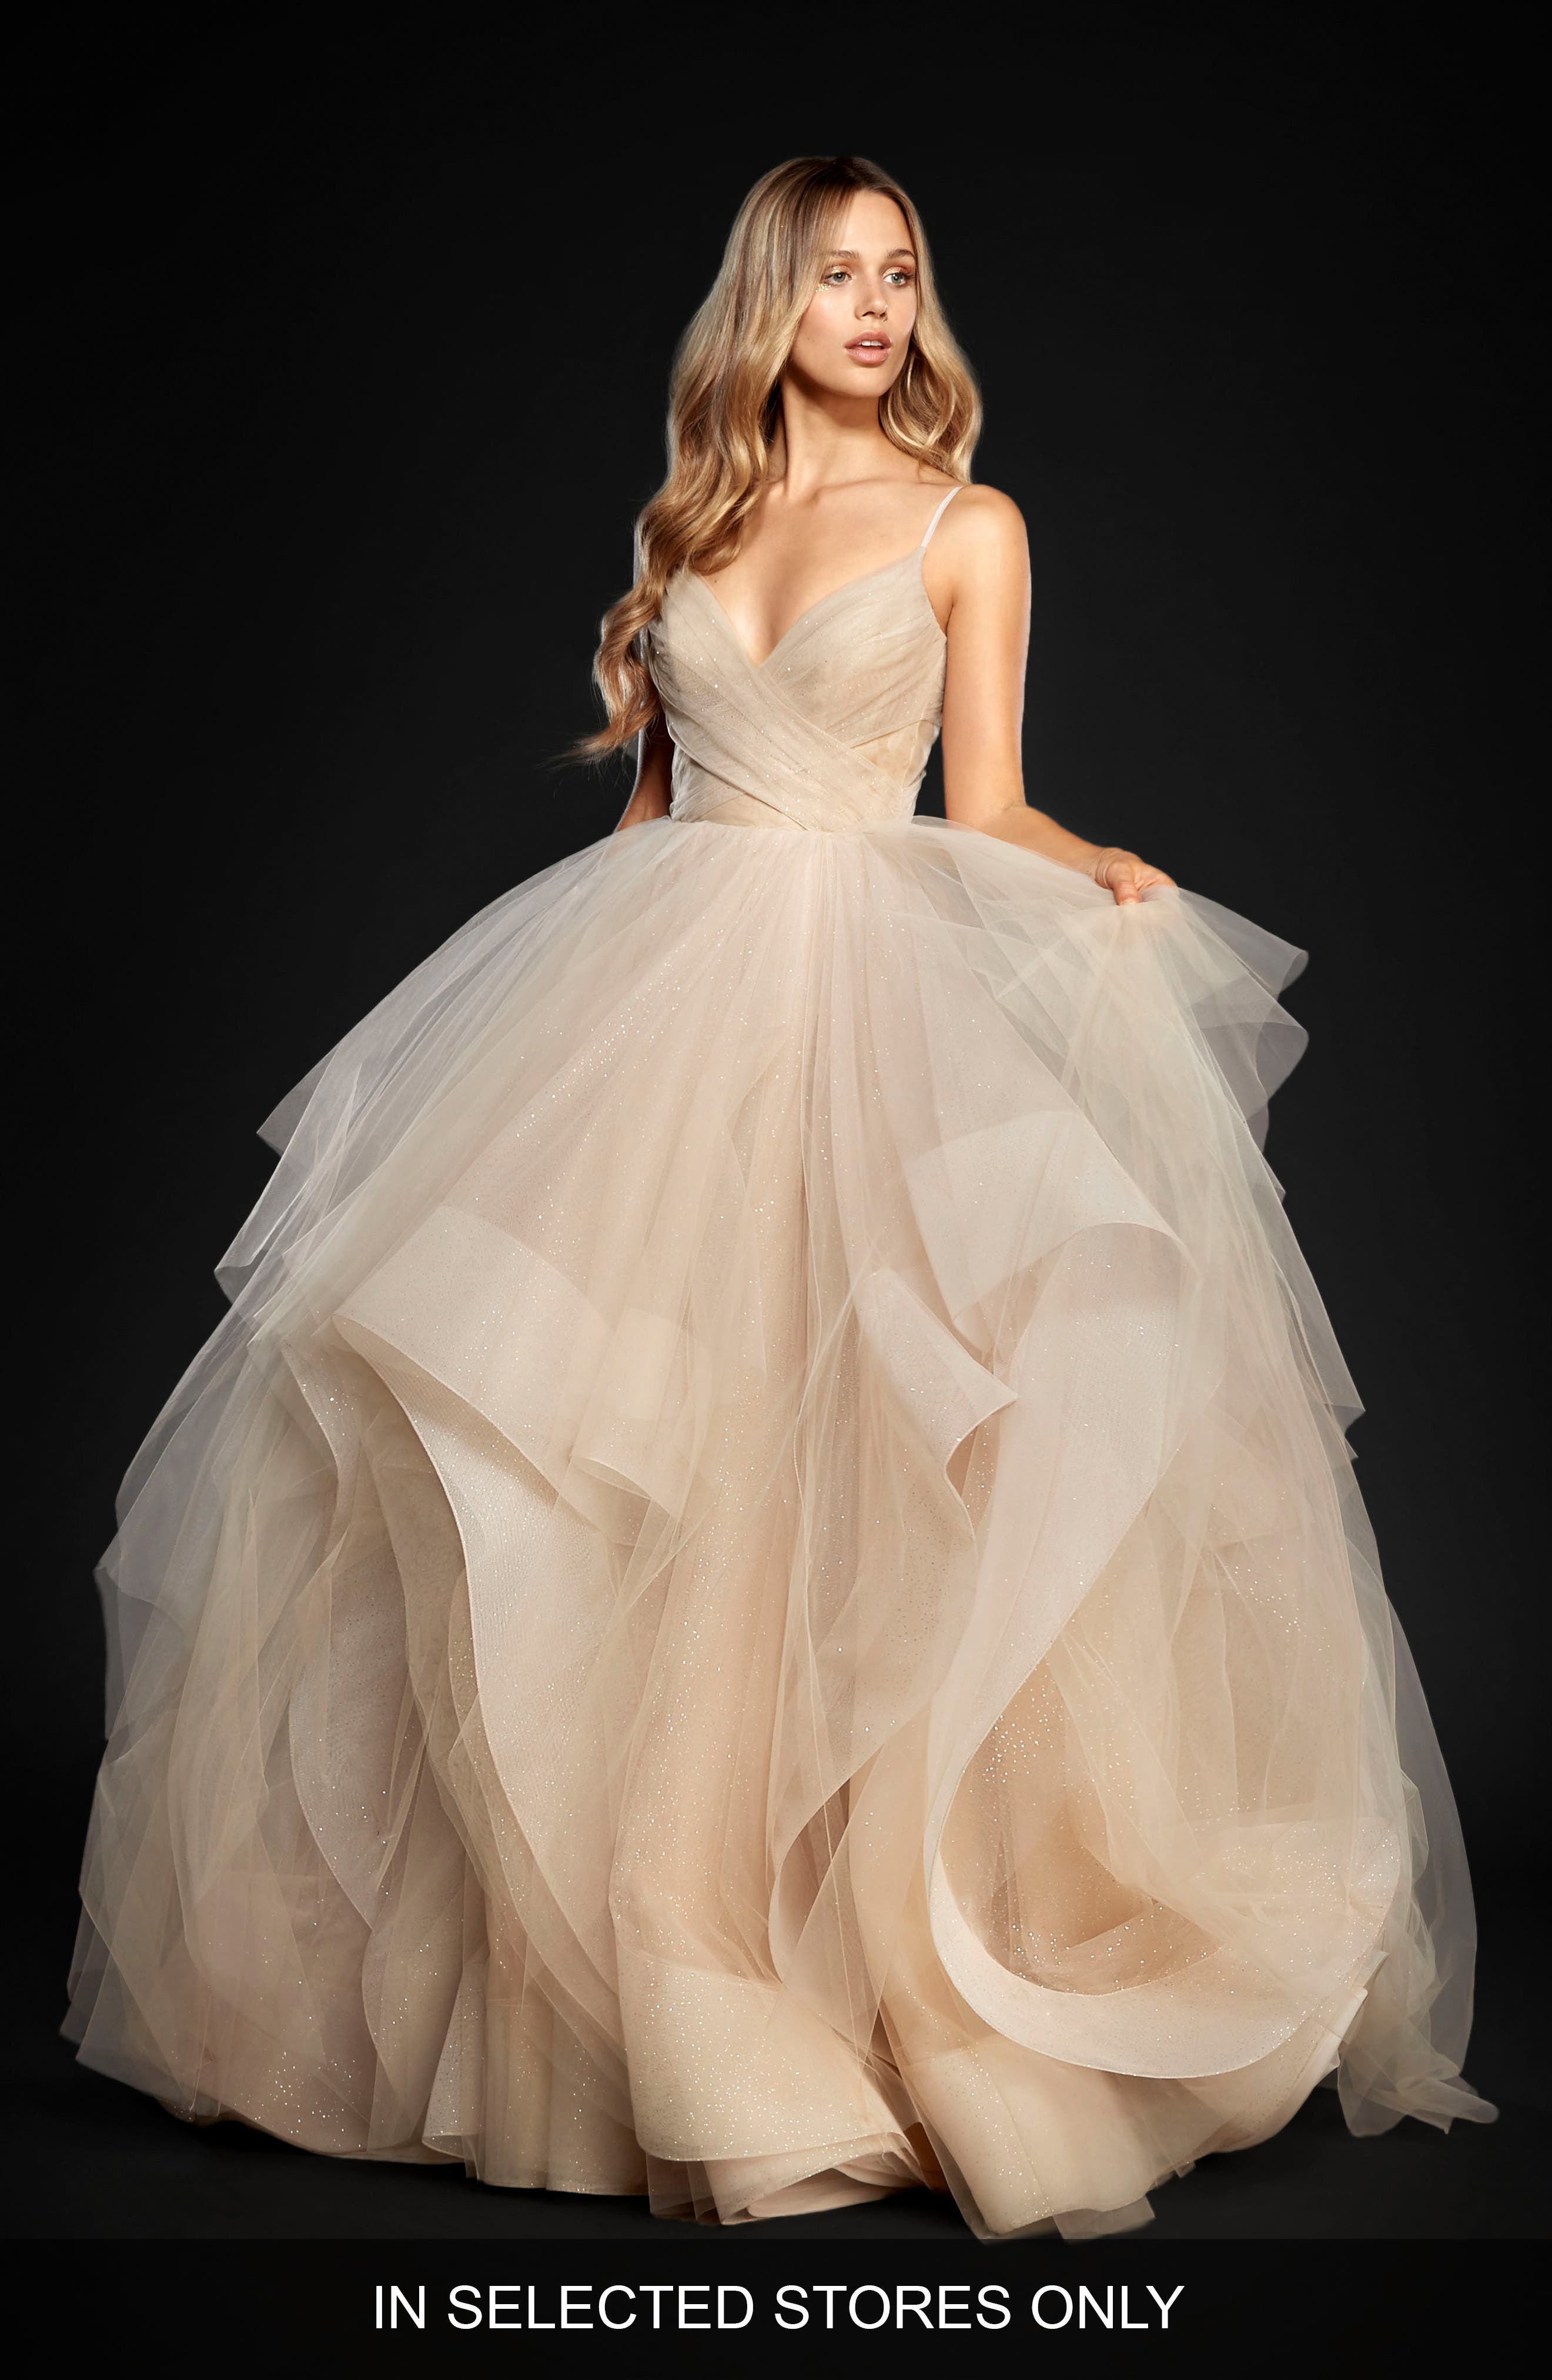 Hayley Paige Chandon Stardust Tulle Ballgown (In Selected Stores Only)